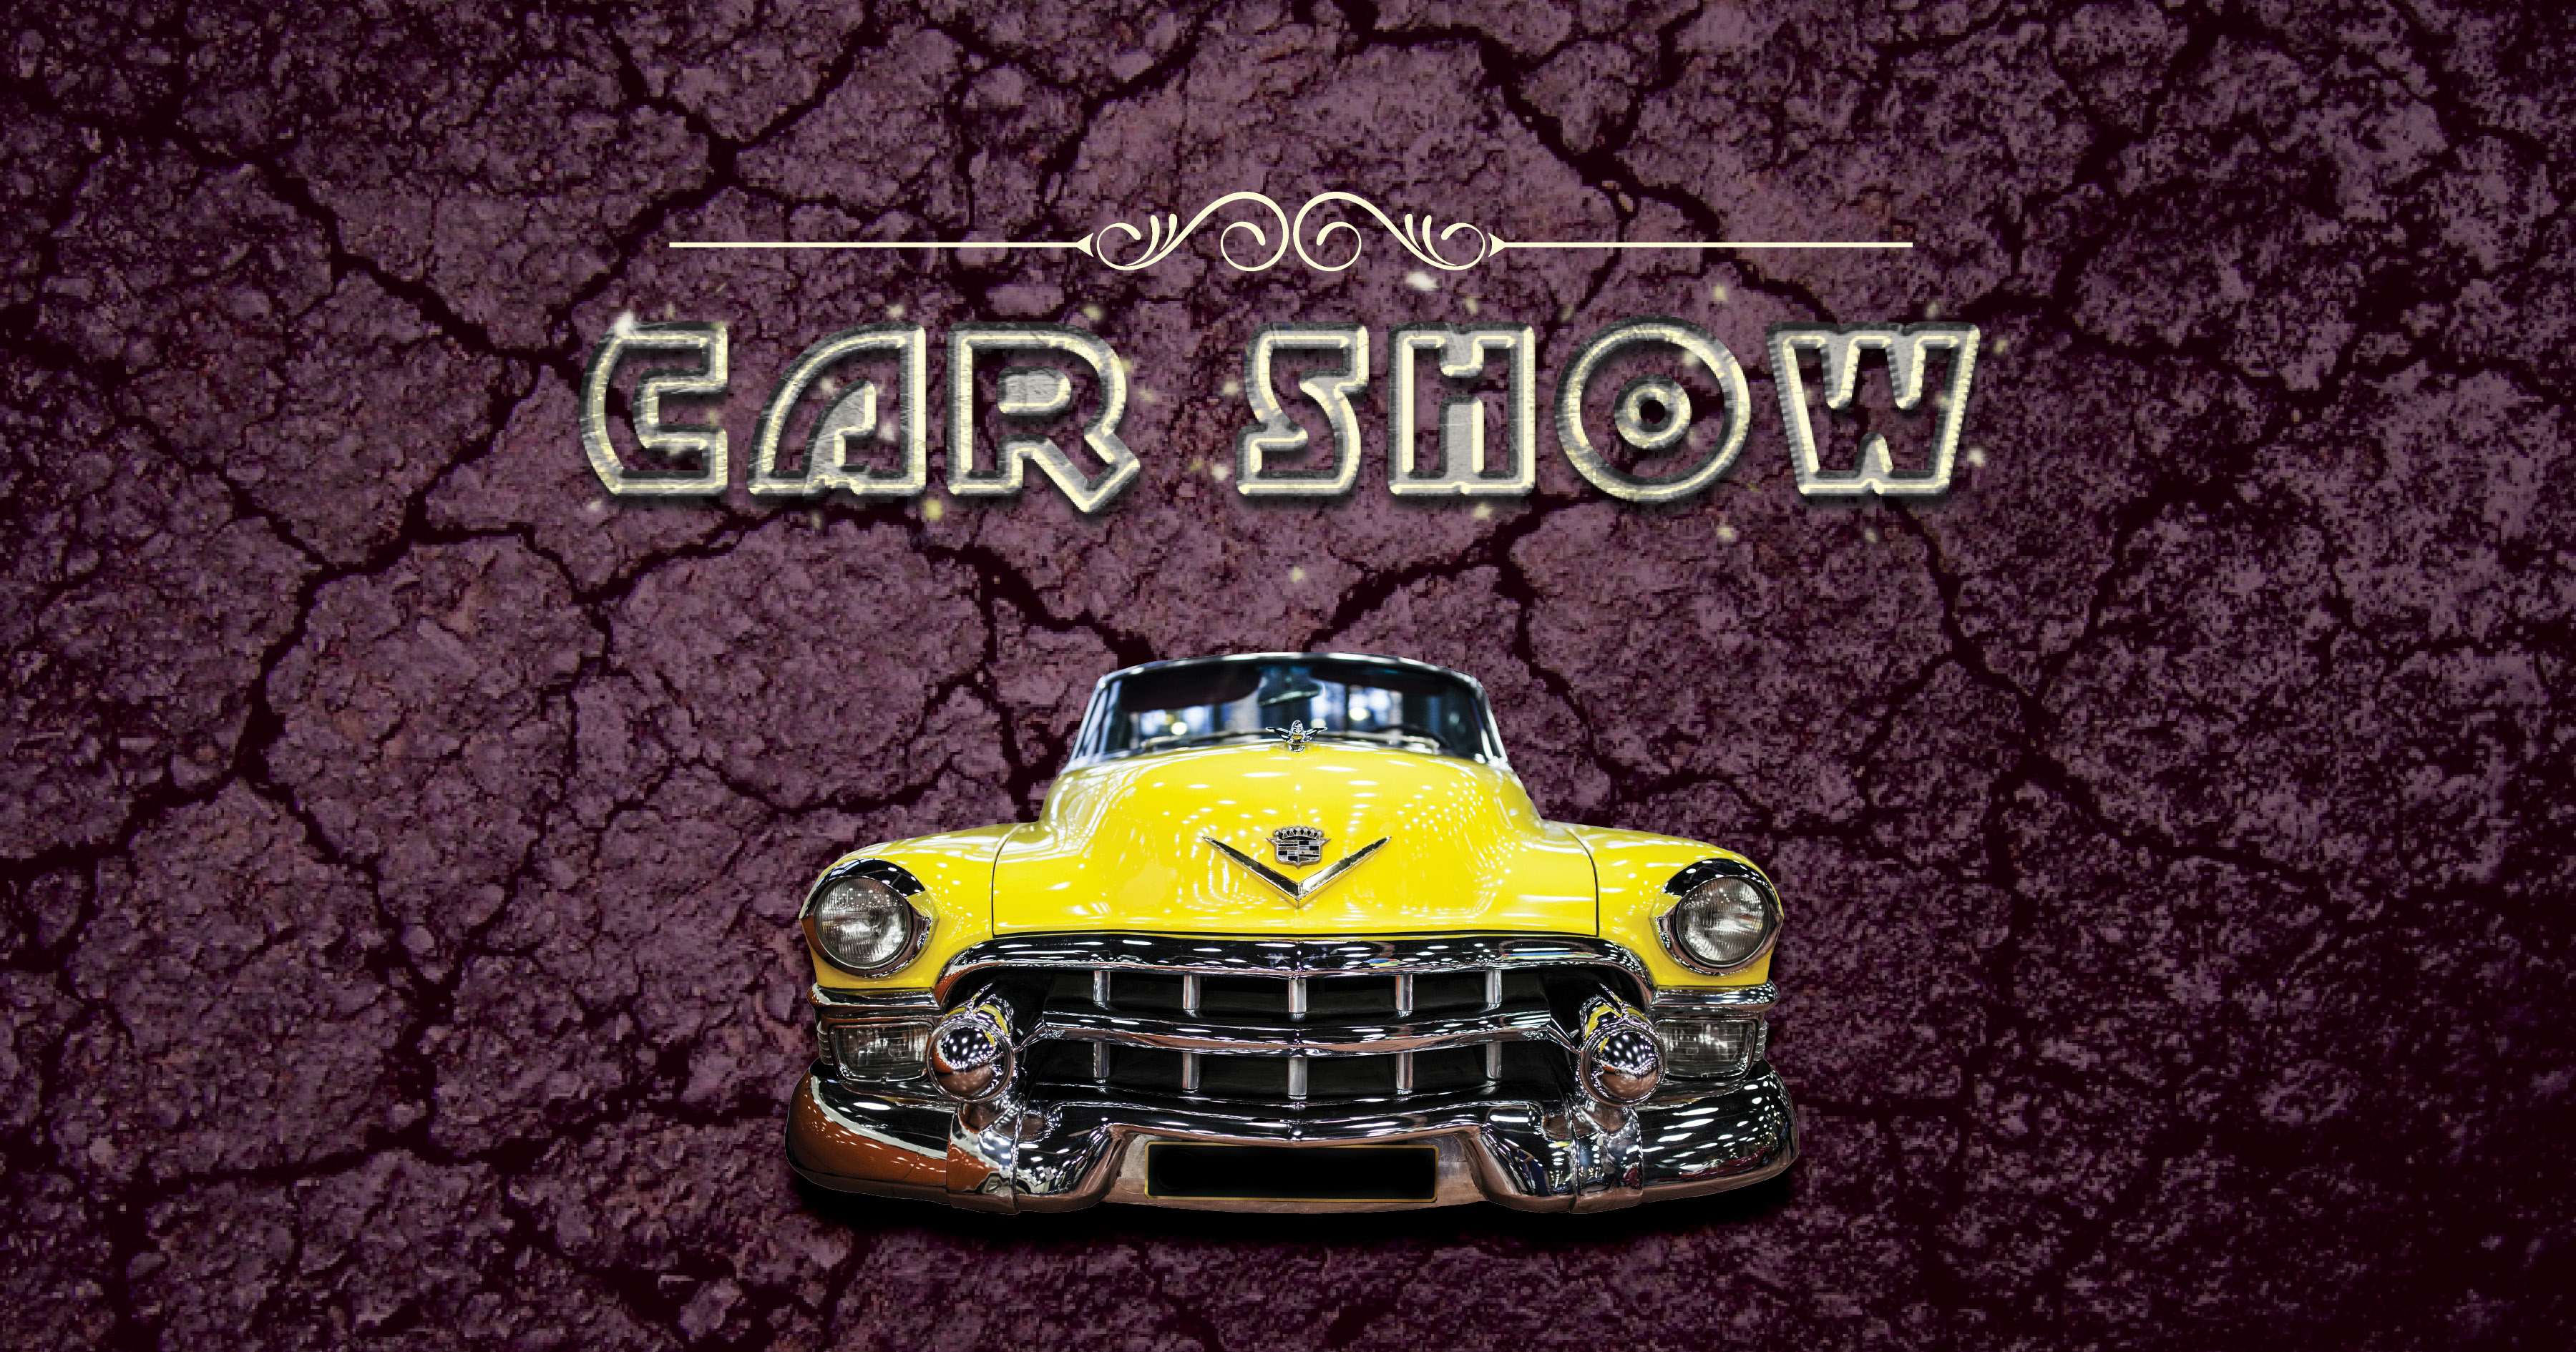 Teamsters Car Show 2018 Image